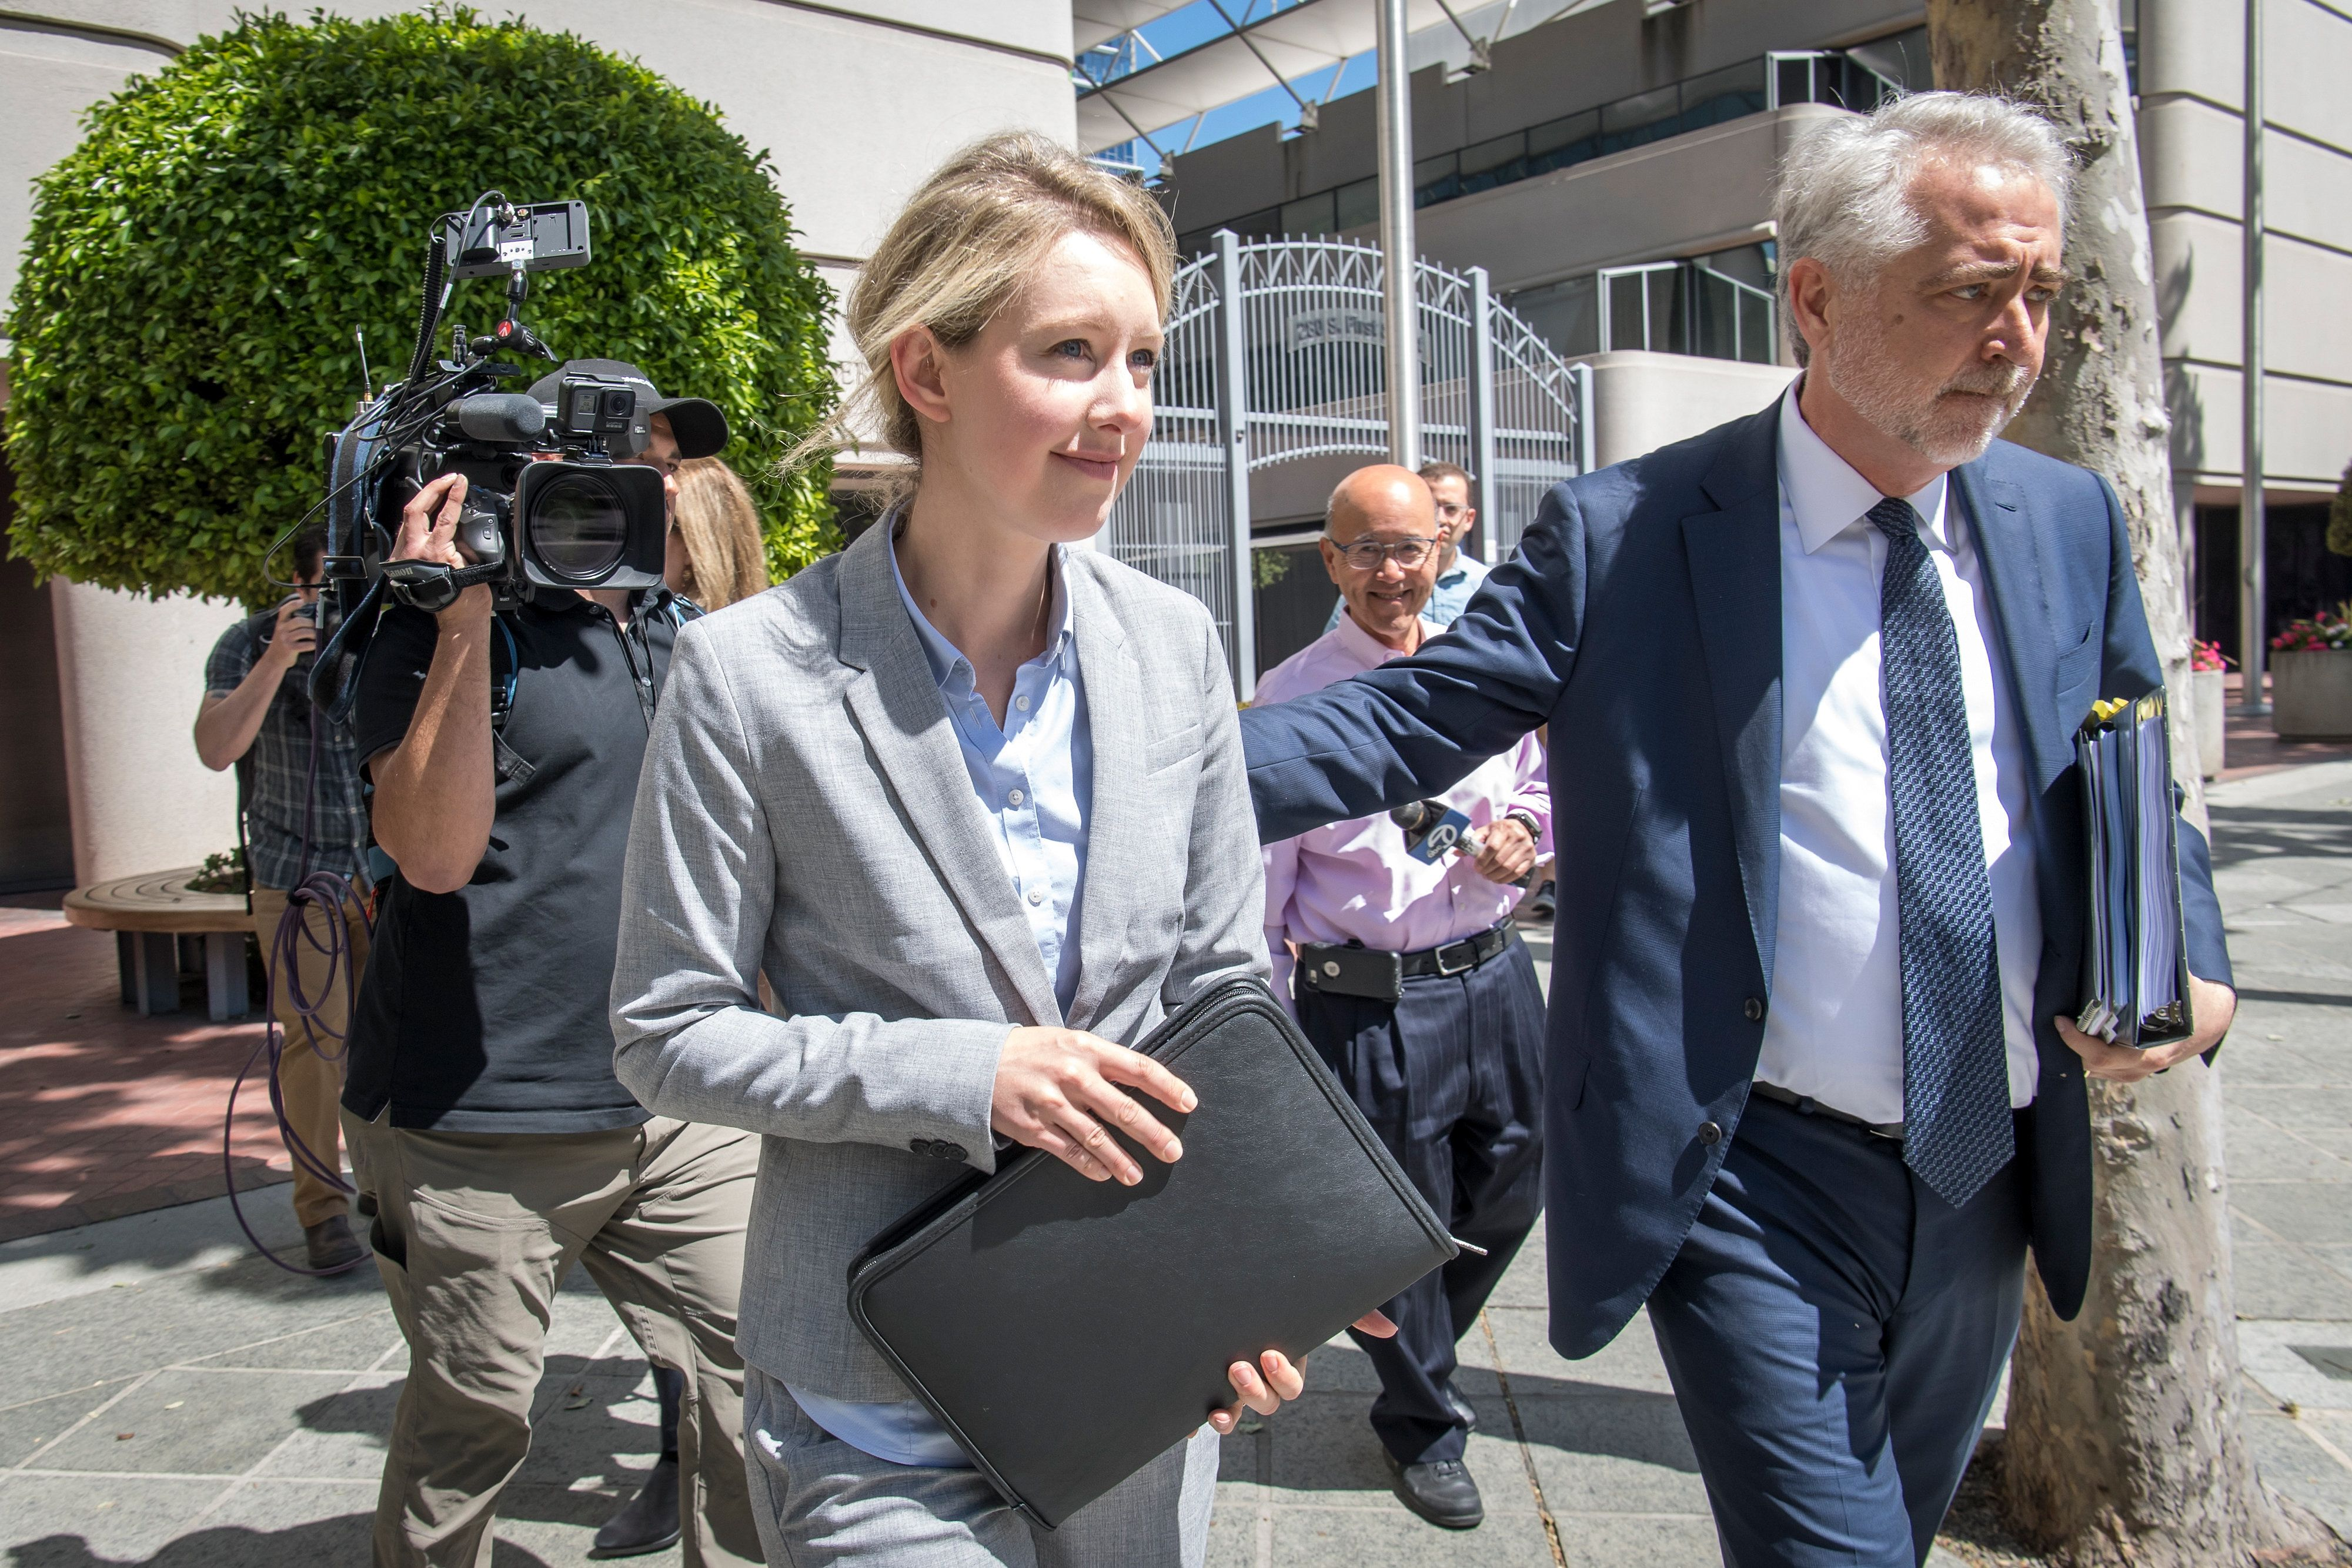 Elizabeth Holmes, founder and former chief executive officer of Theranos Inc., exits federal court in San Jose, California, U.S., on Monday, April 22, 2019. Holmes faces charges of felony conspiracy and fraud, after allegedly misleading patients, health care professionals and investors about her company's blood-testing technology. Photographer: David Paul Morris/Bloomberg via Getty Images